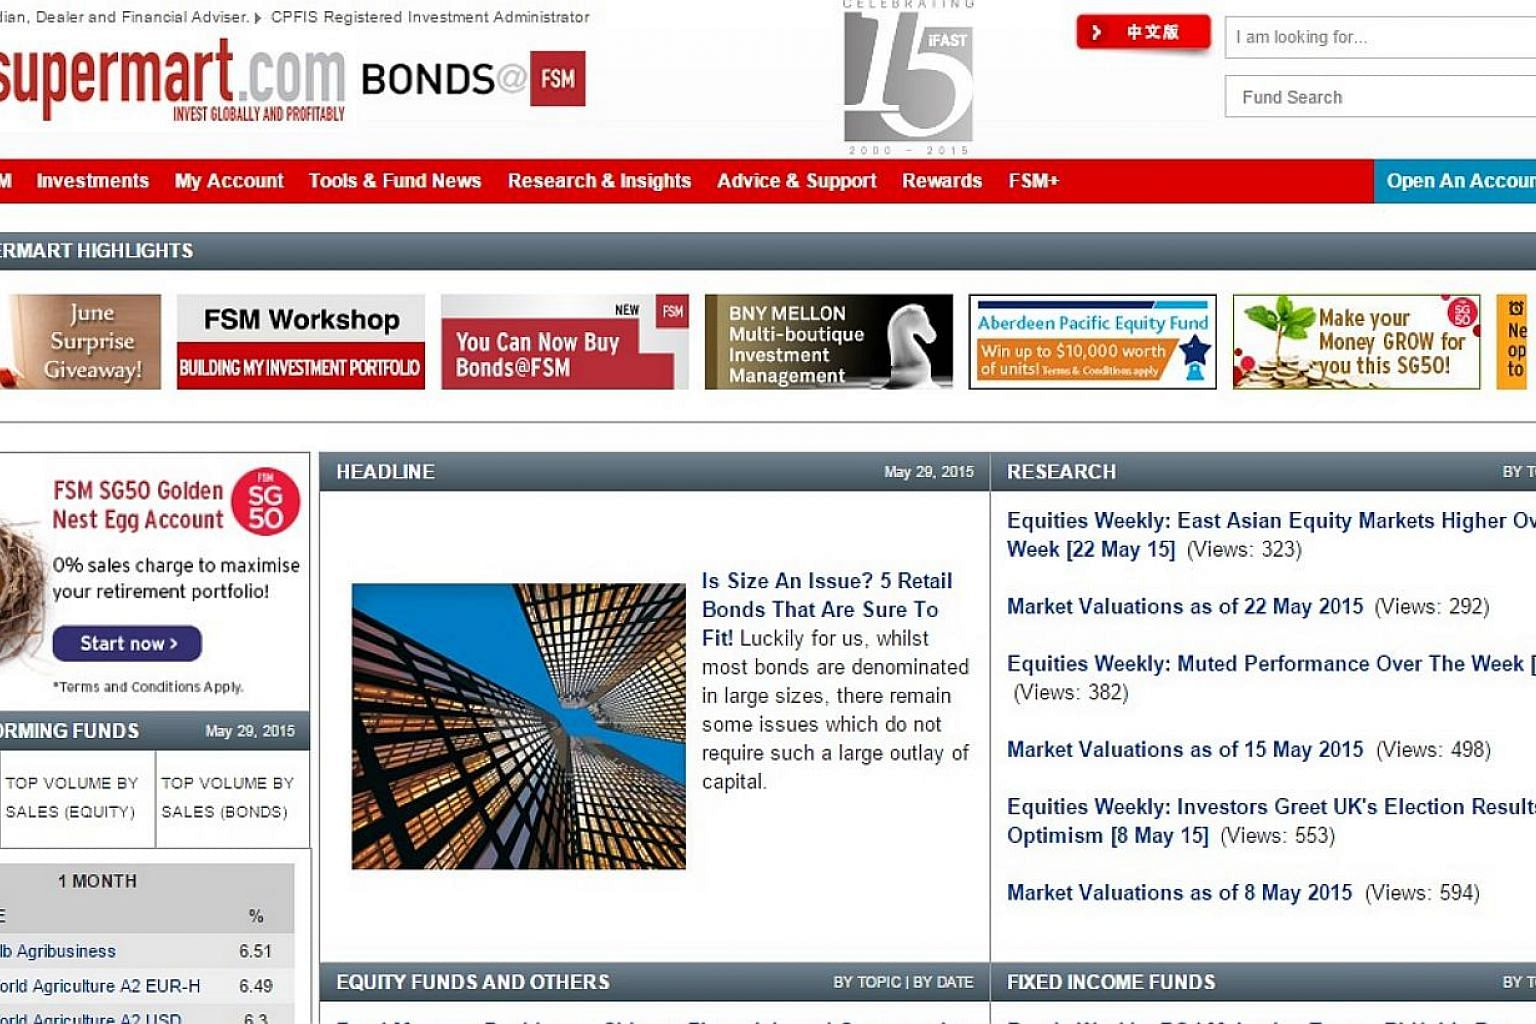 Pressure from financial firms forced online distributor Fundsupermart to scrap a promotion offering lower life insurance commissions just days after it was launched, it was alleged yesterday. -- PHOTO: WEBSITE SCREENGRAB